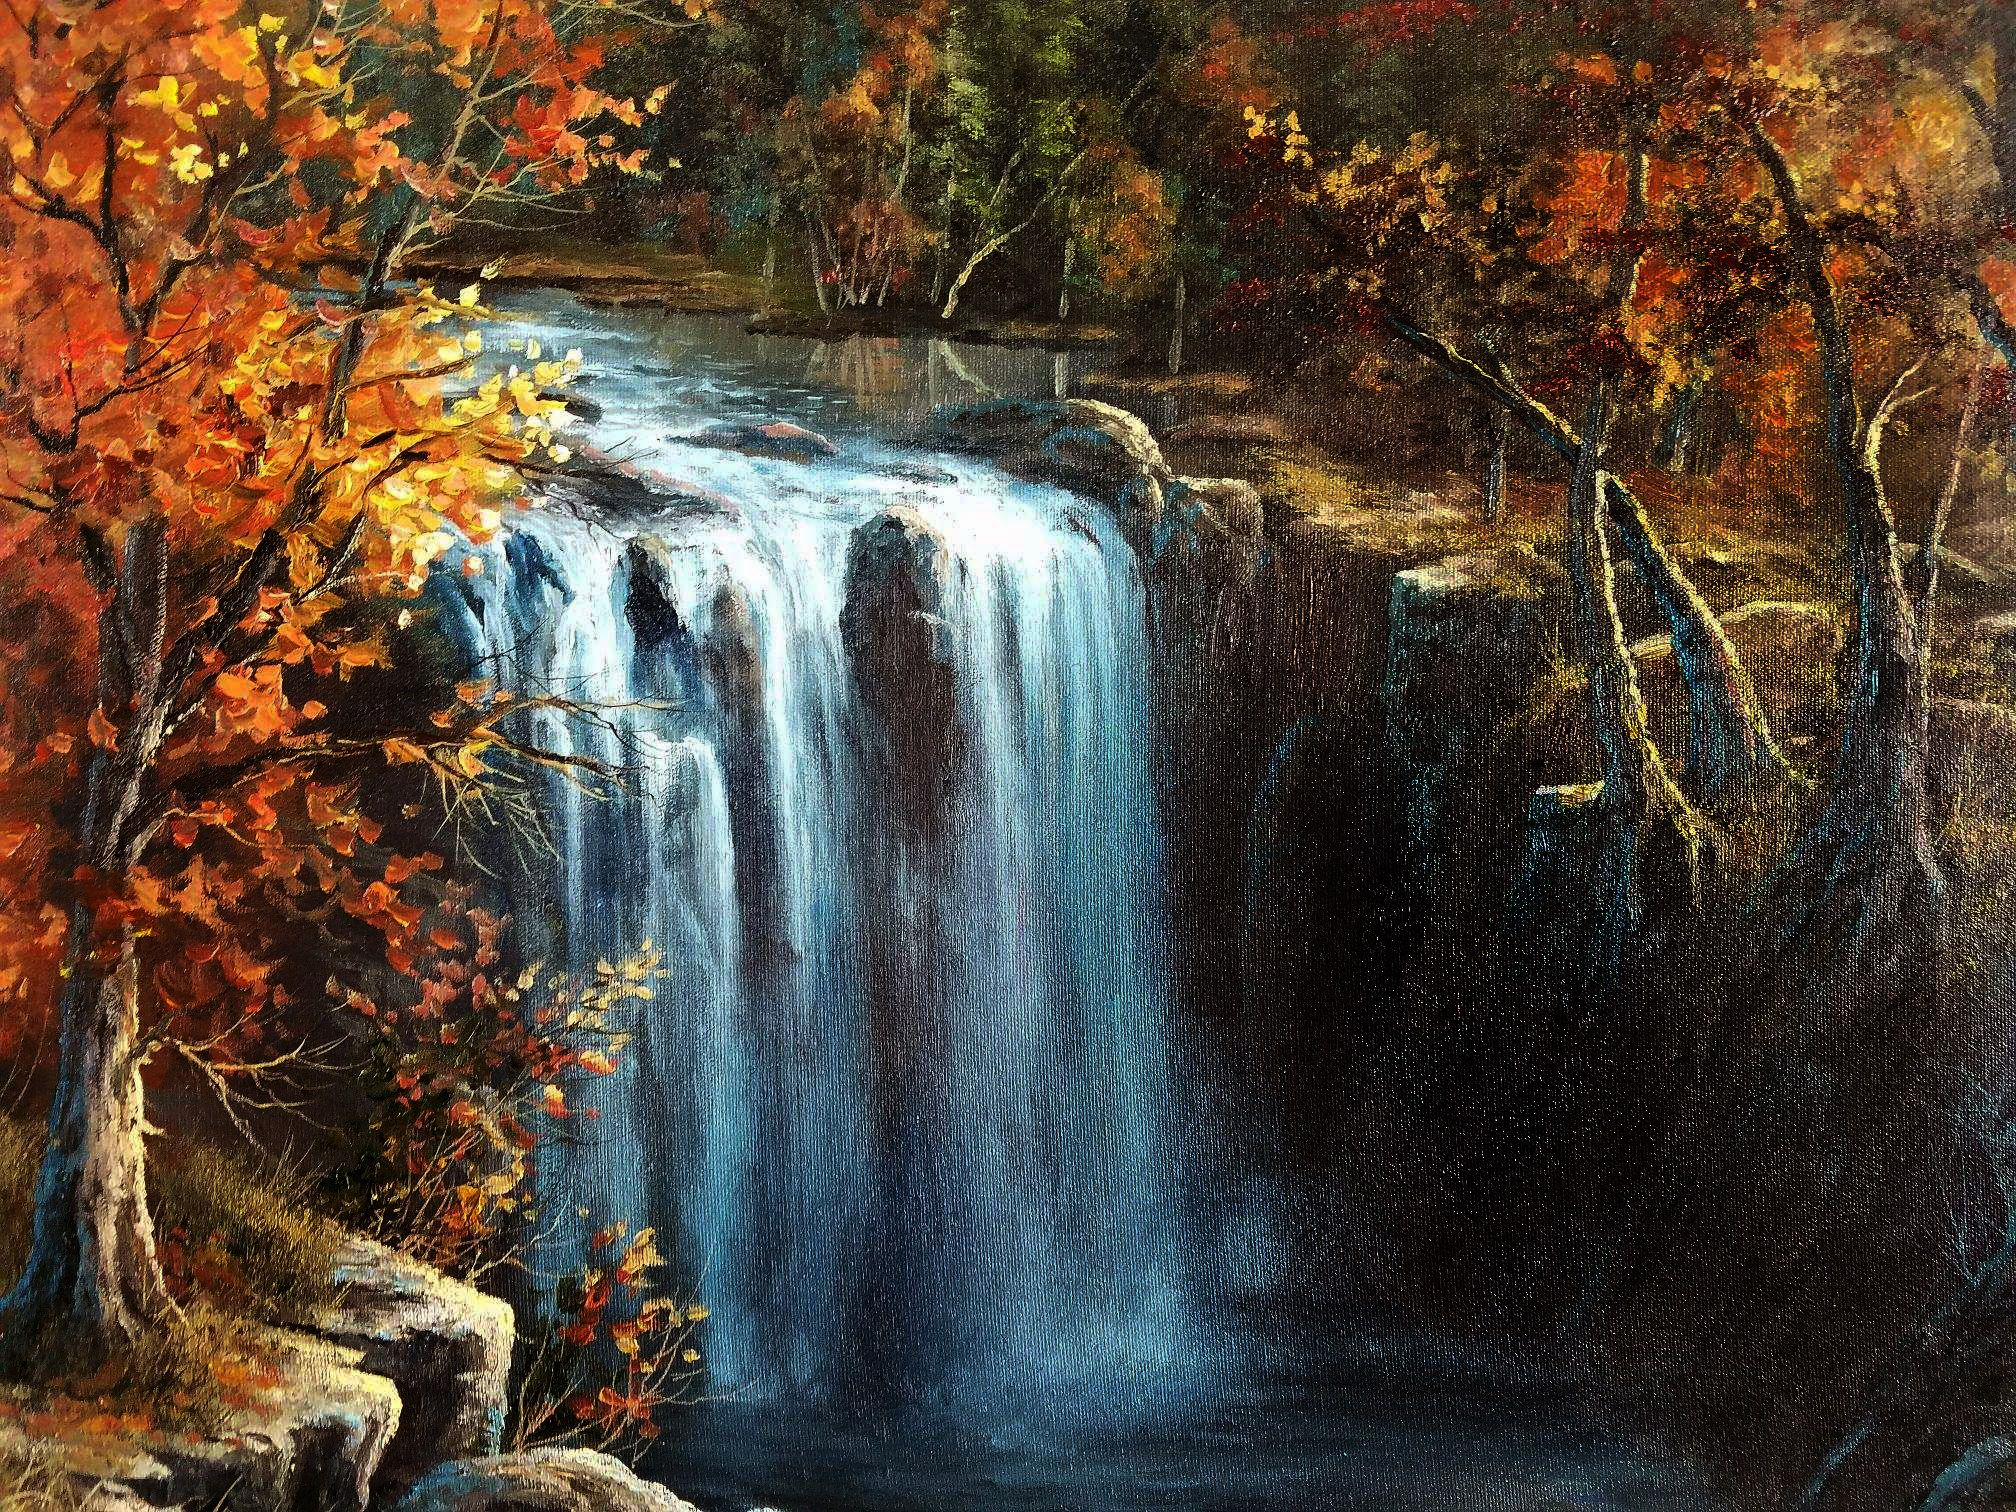 """Waterfall in Autumn"" Oil Painting by Kevin Hill Watch"